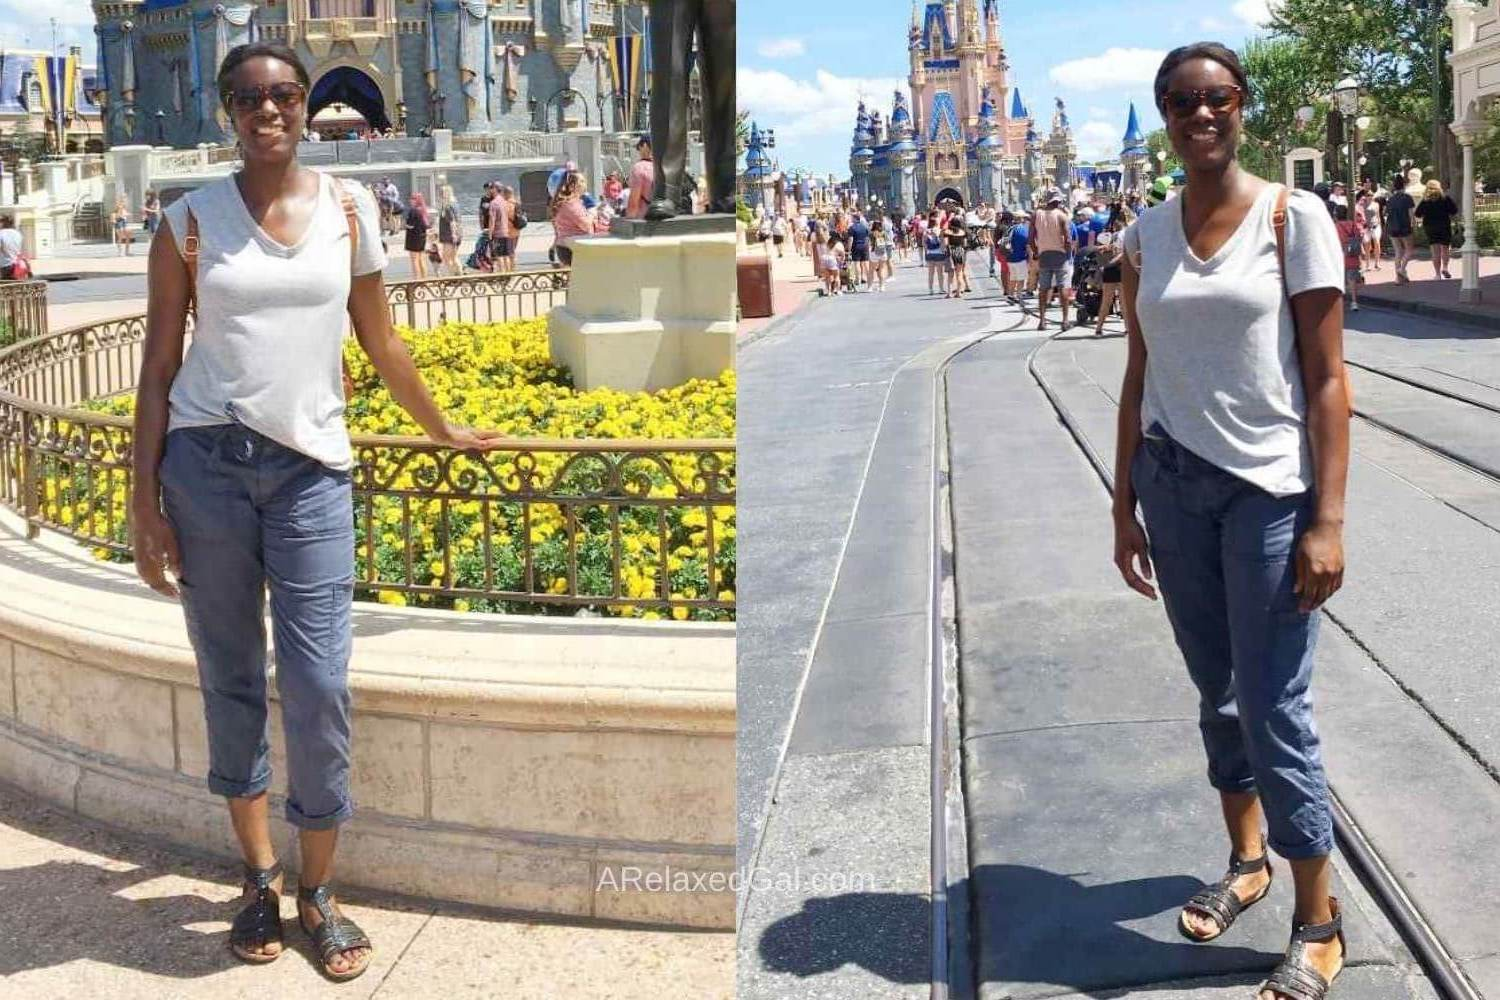 Summer day trip outfit for women | A Relaxed Gal